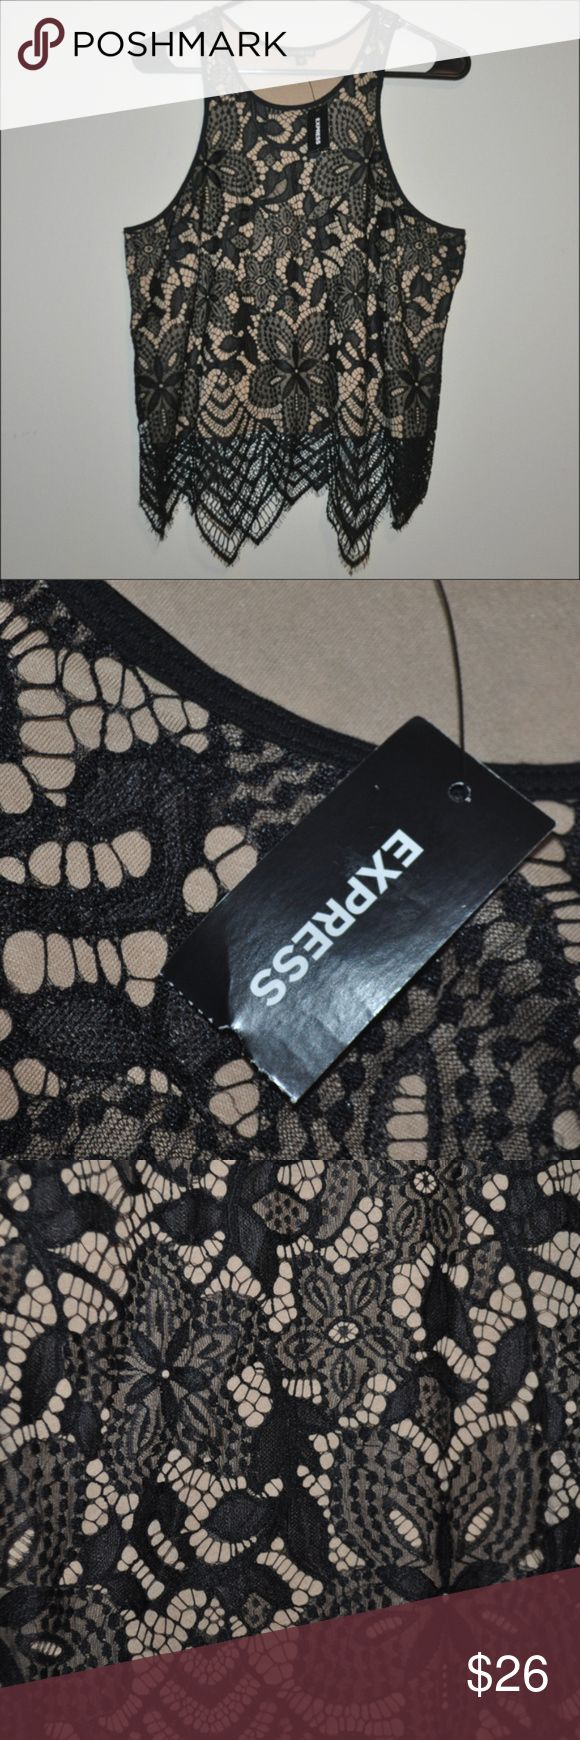 NWT Express Black Lace Top BRAND NEW WITH TAG / tags: beauty beautiful stunning …